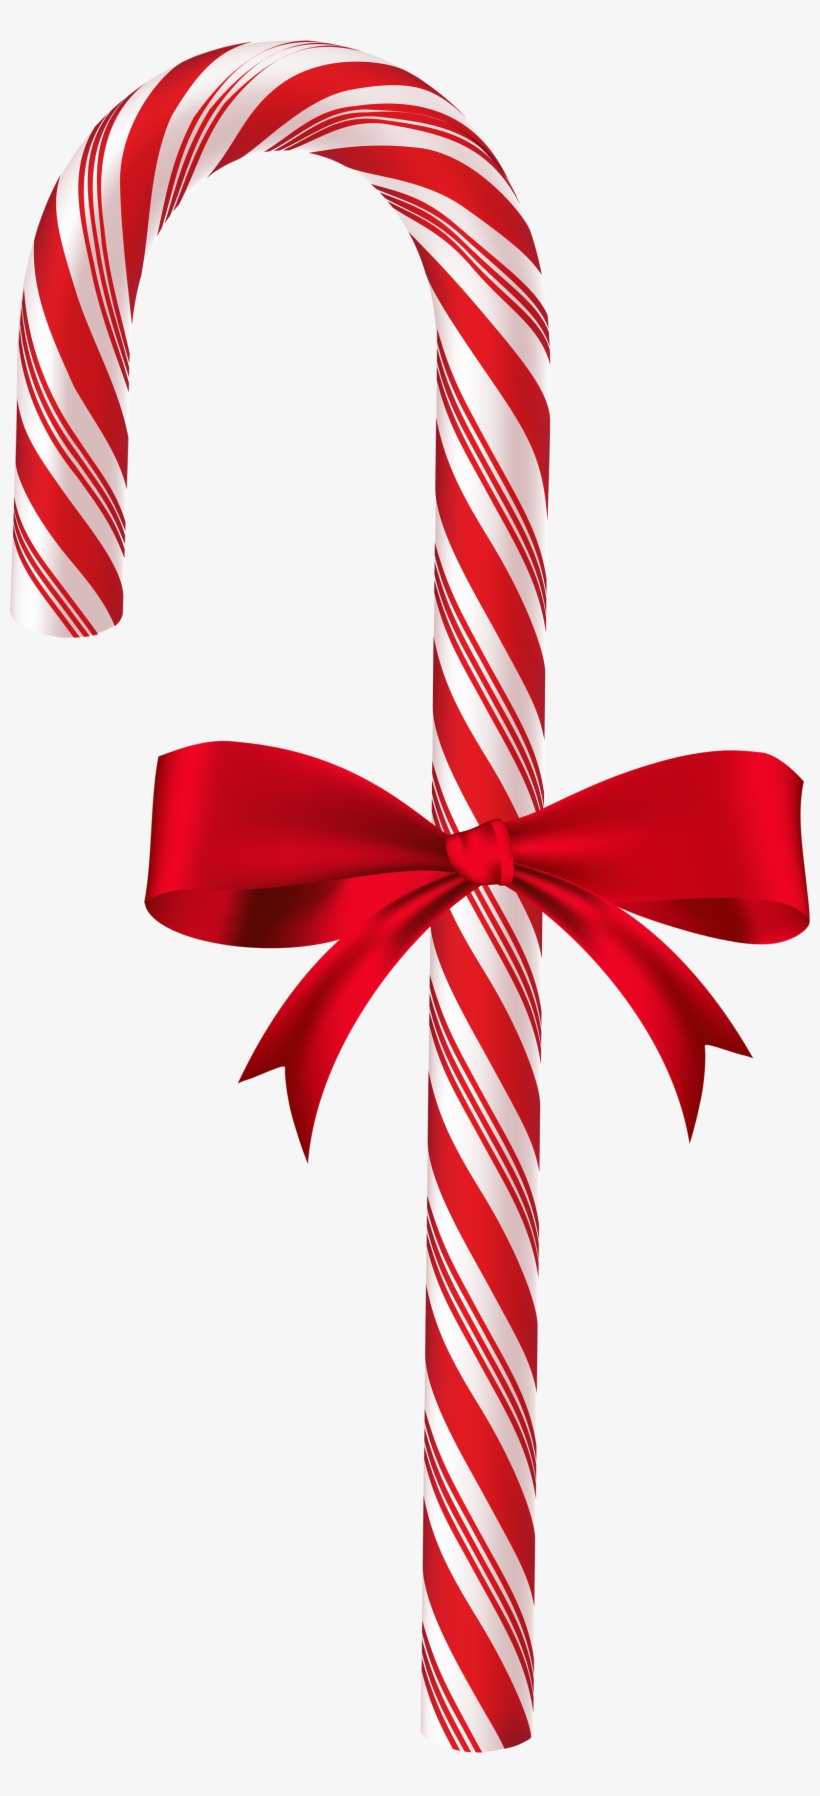 Candy Cane Cookies, Candy Canes, Candy Cane Christmas,, transparent png #5418